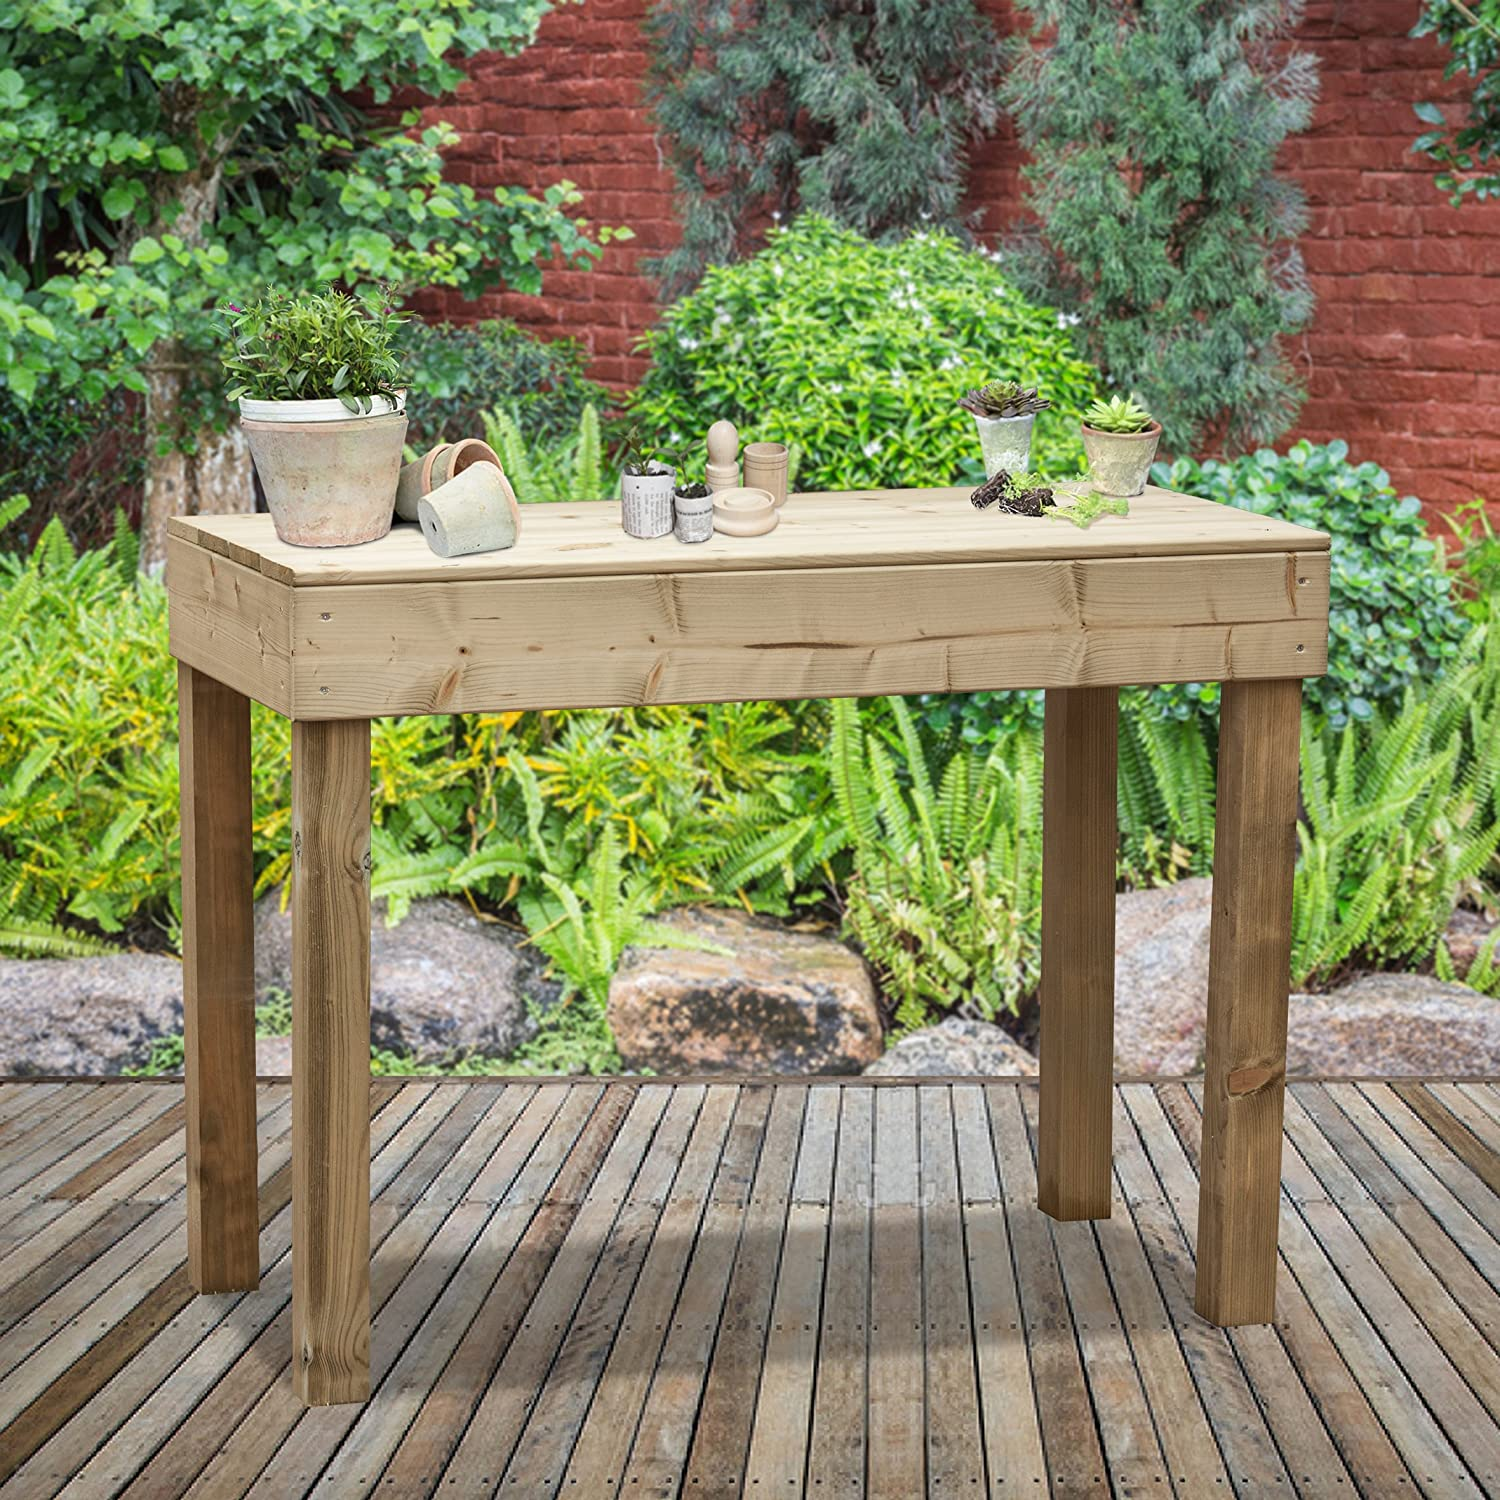 Greena® Wooden Garden Display Bench - Greenhouse Table/Germination Station/Flower Potting Table/Workshop Table/DIY Bench/Wooden Seat/Greenhouse Storage (H45 x W60 x D30cm)